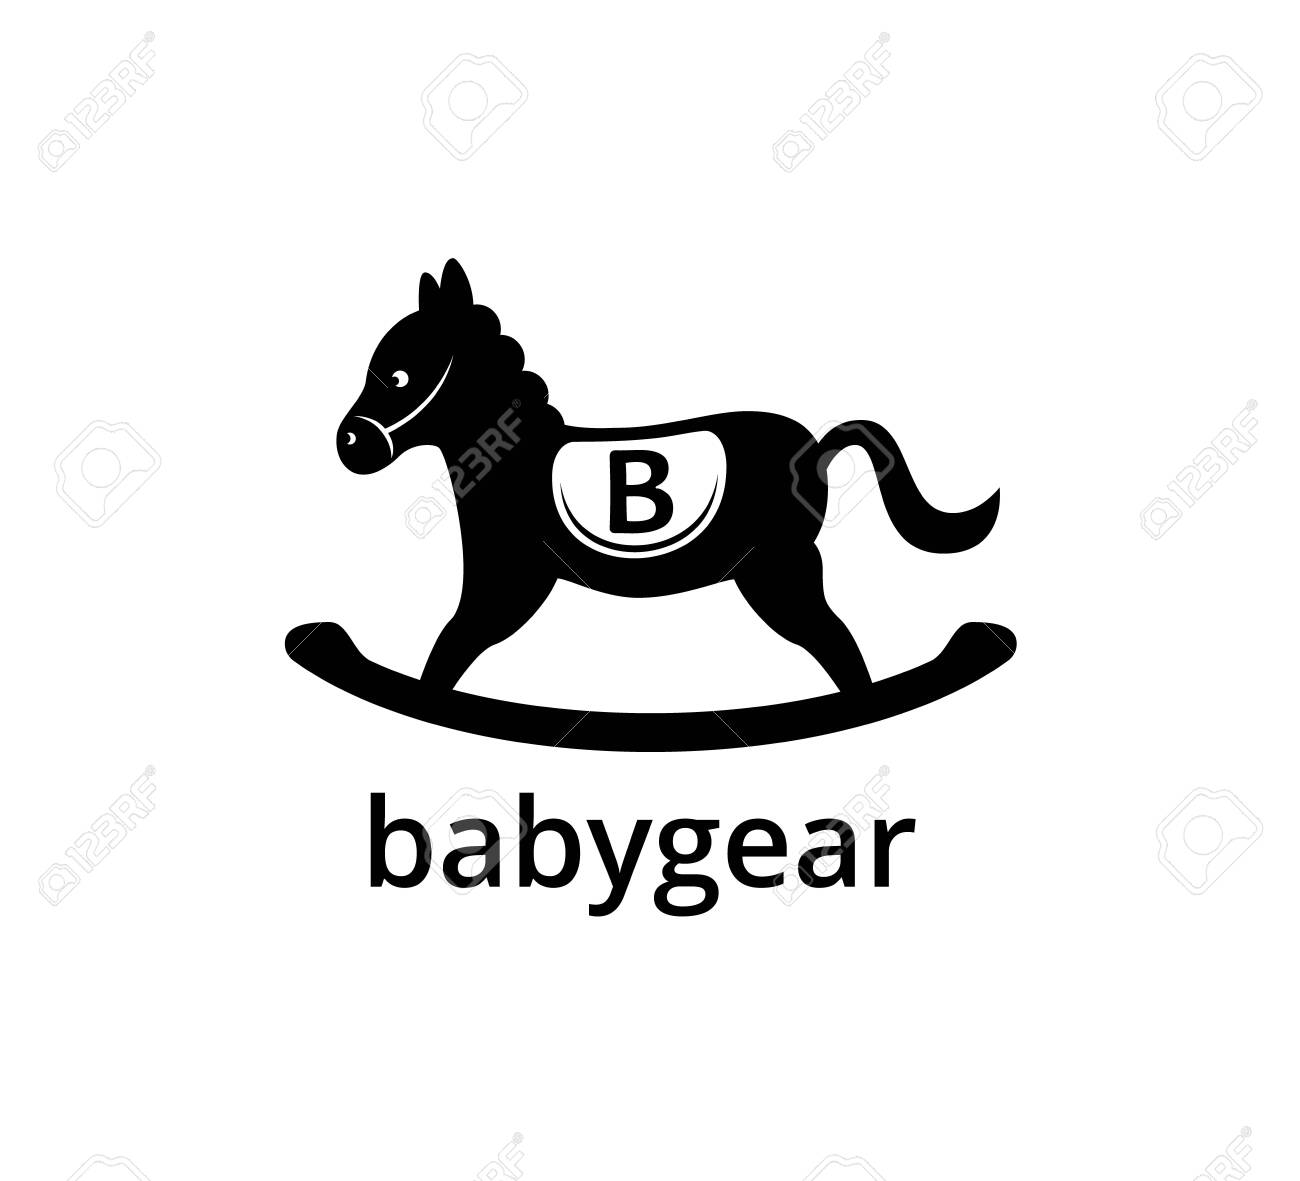 Wooden Black Horse With Letter B For Kids Toy Business Vector Royalty Free Cliparts Vectors And Stock Illustration Image 131291244